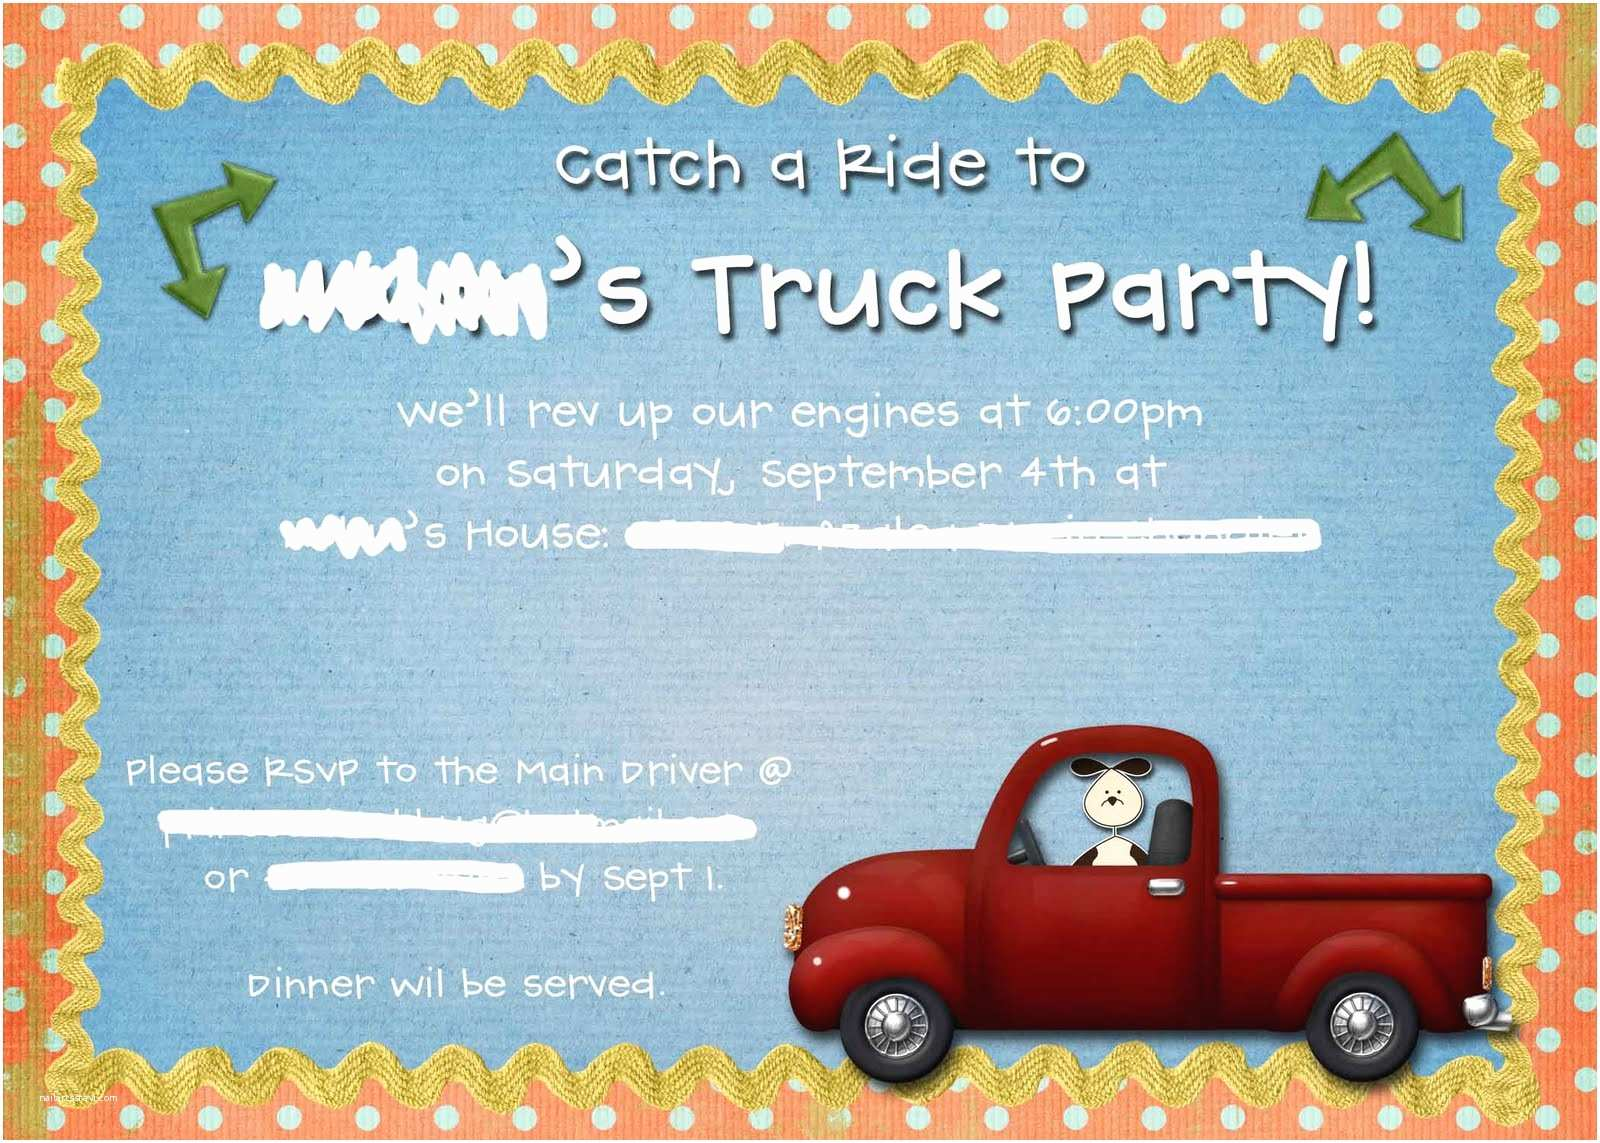 Trunk Party Invitations College Free